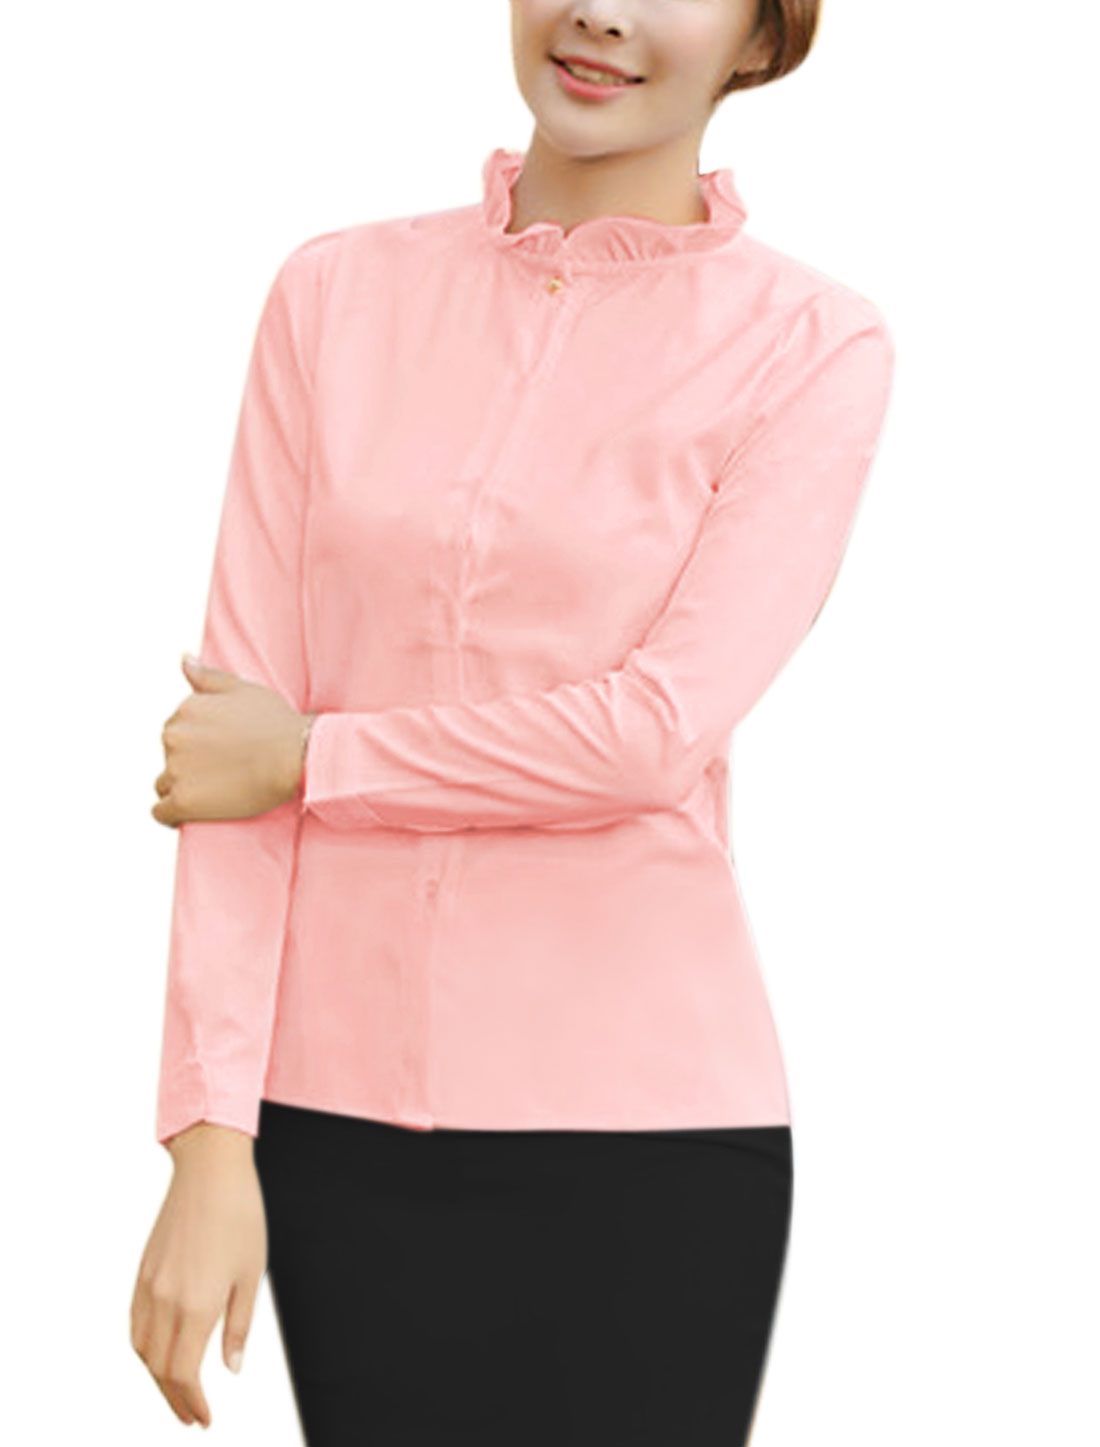 Ladies Ruffled Collar Slim Fit Buttoned Shirt Pink M